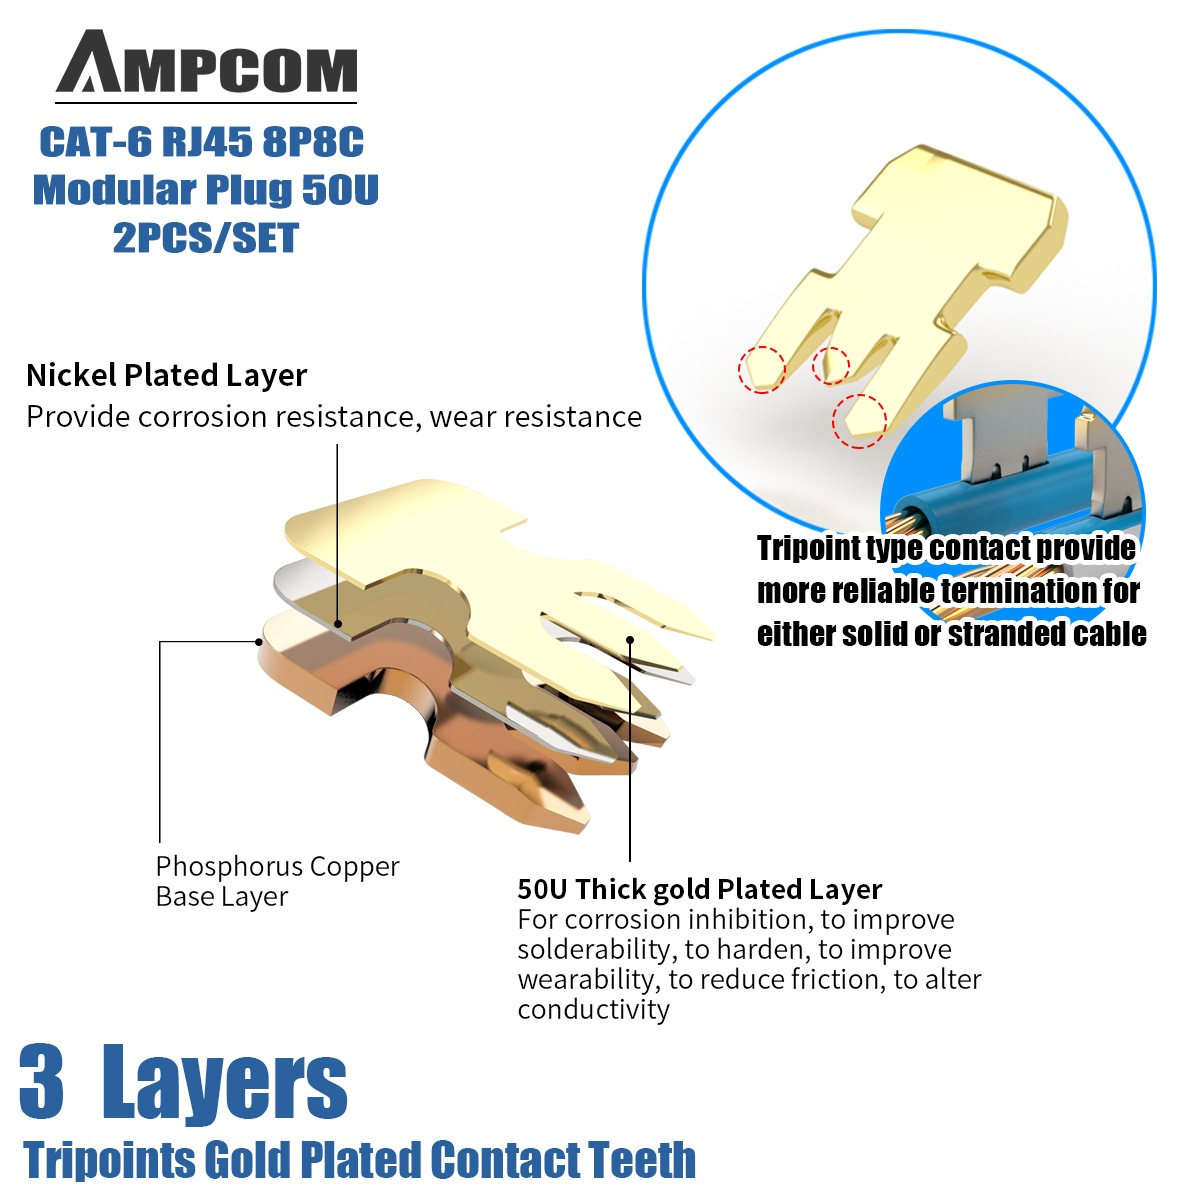 Wholesale CAT6 UTP RJ45 Connector 8P8C Modular Plug 2 piece suit Gold Plate Quality Material for Patch Cable 100pcs - Transparent